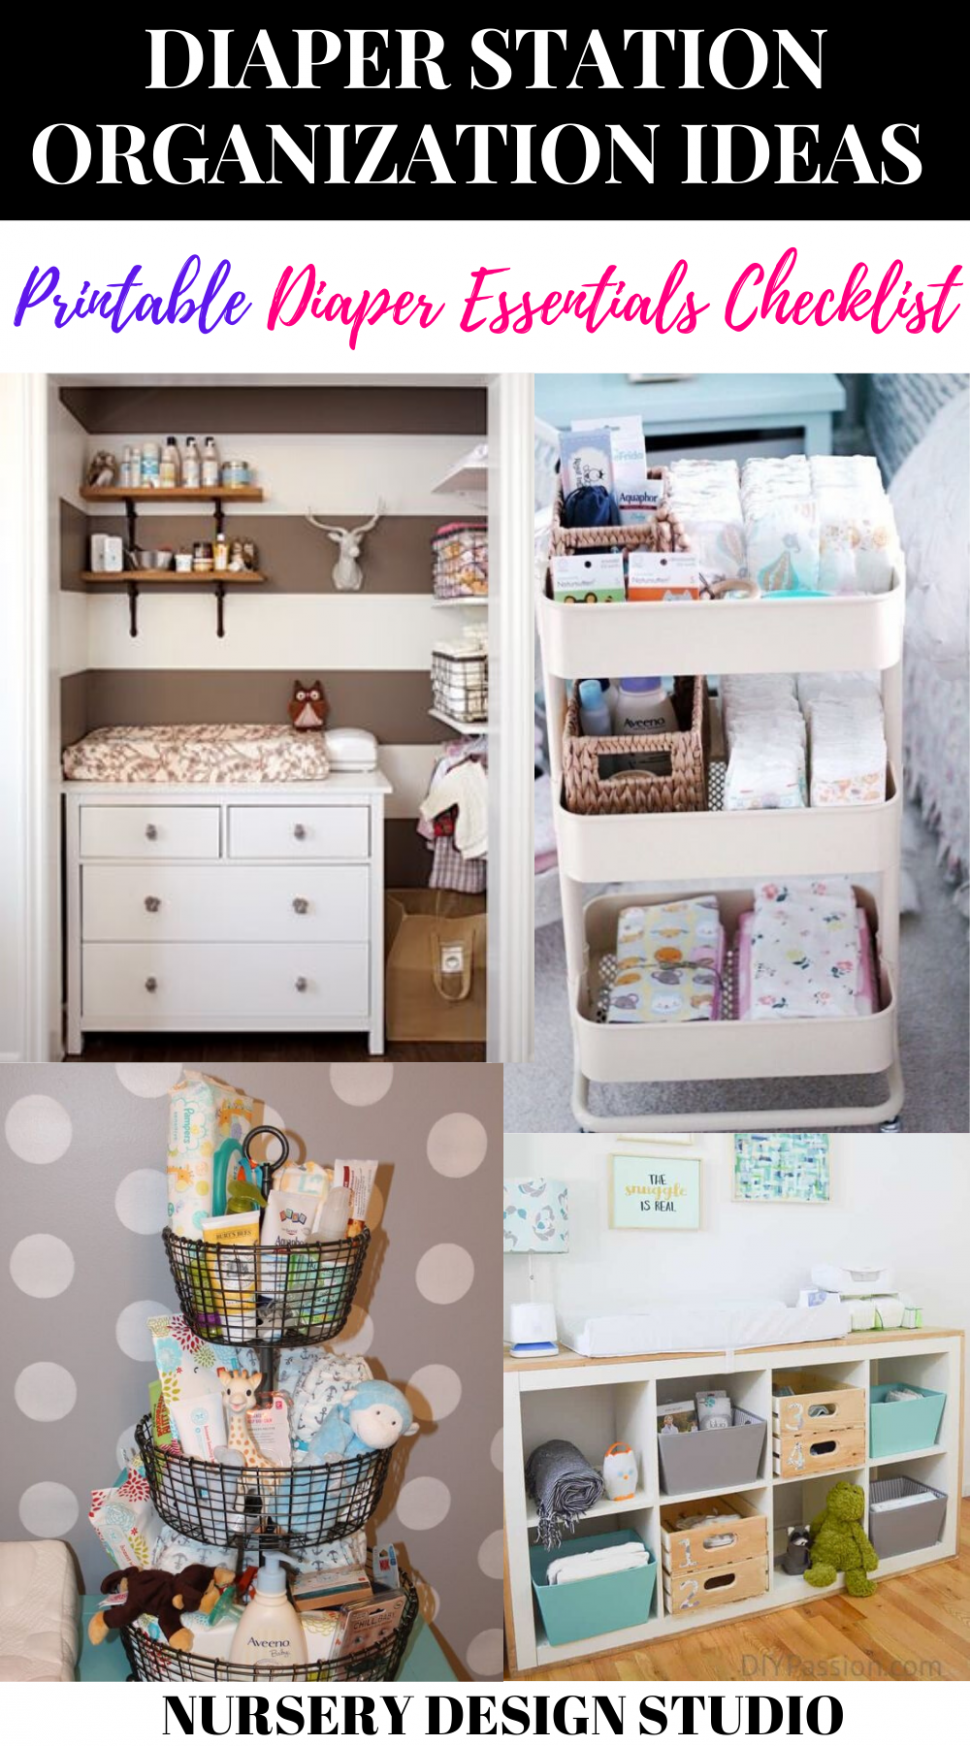 8 NURSERY ORGANIZATION TIPS TO KEEP BABY'S ROOM ORGANIZED ...